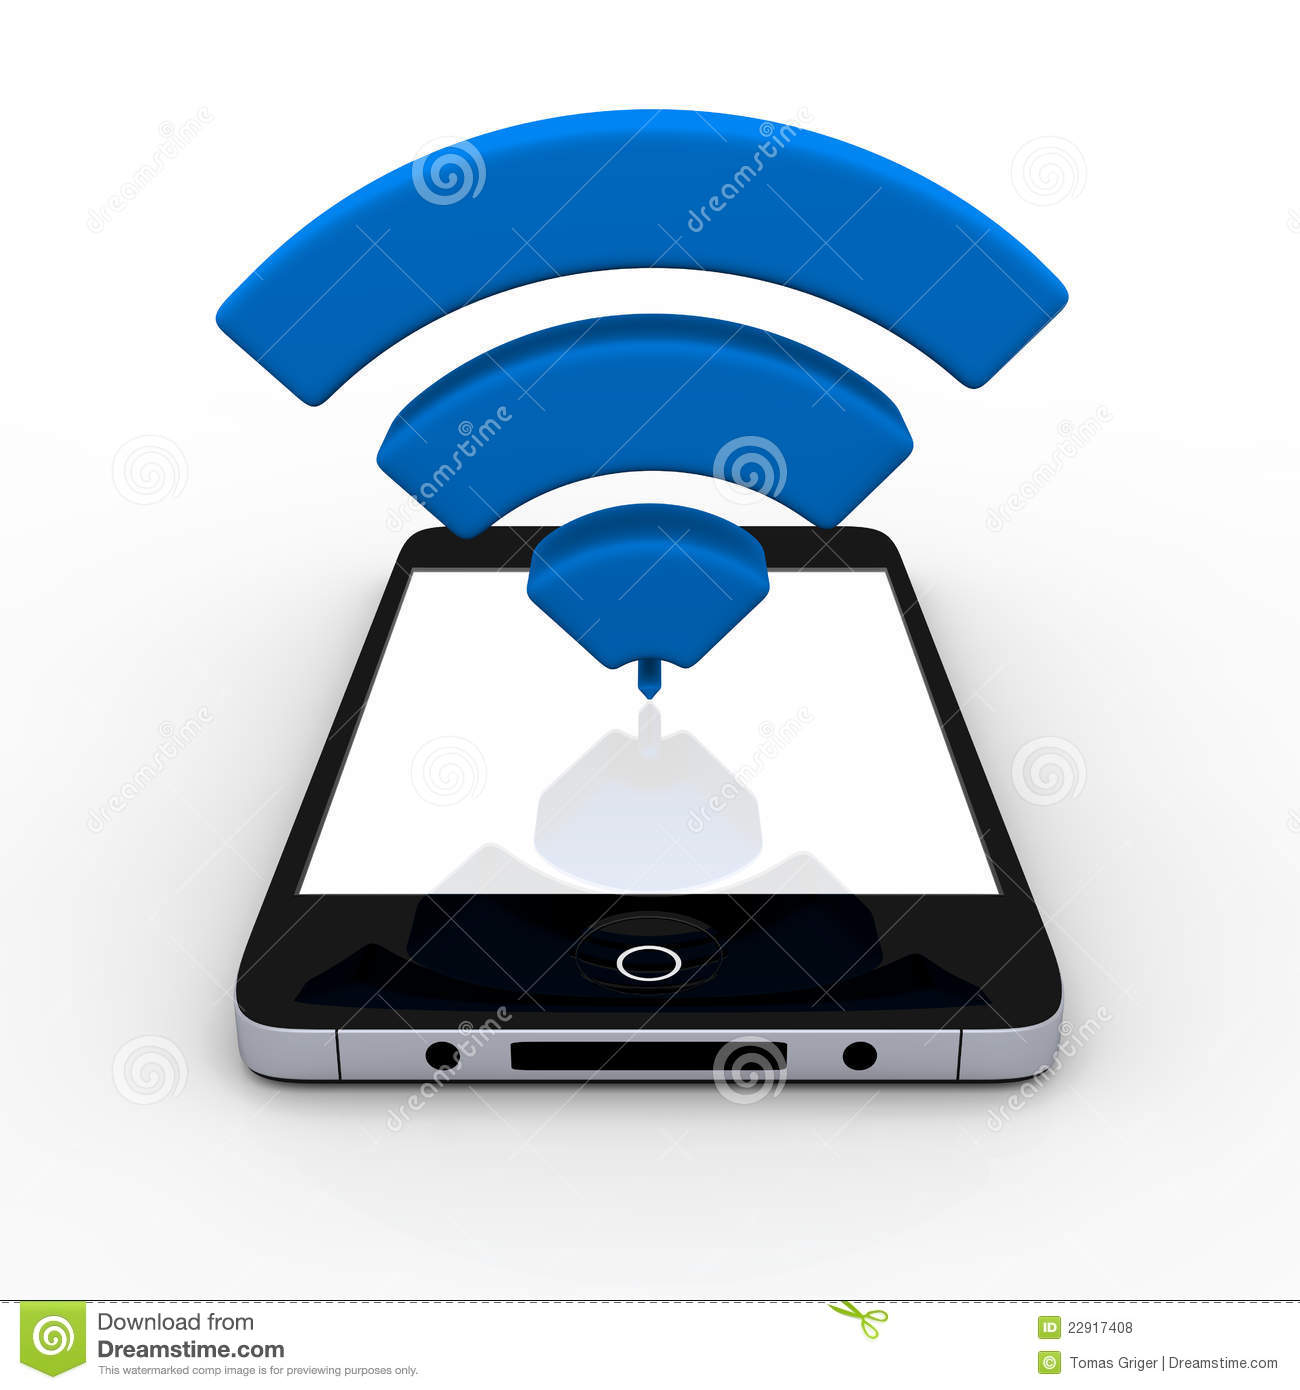 how to connect phone to brock u wifi